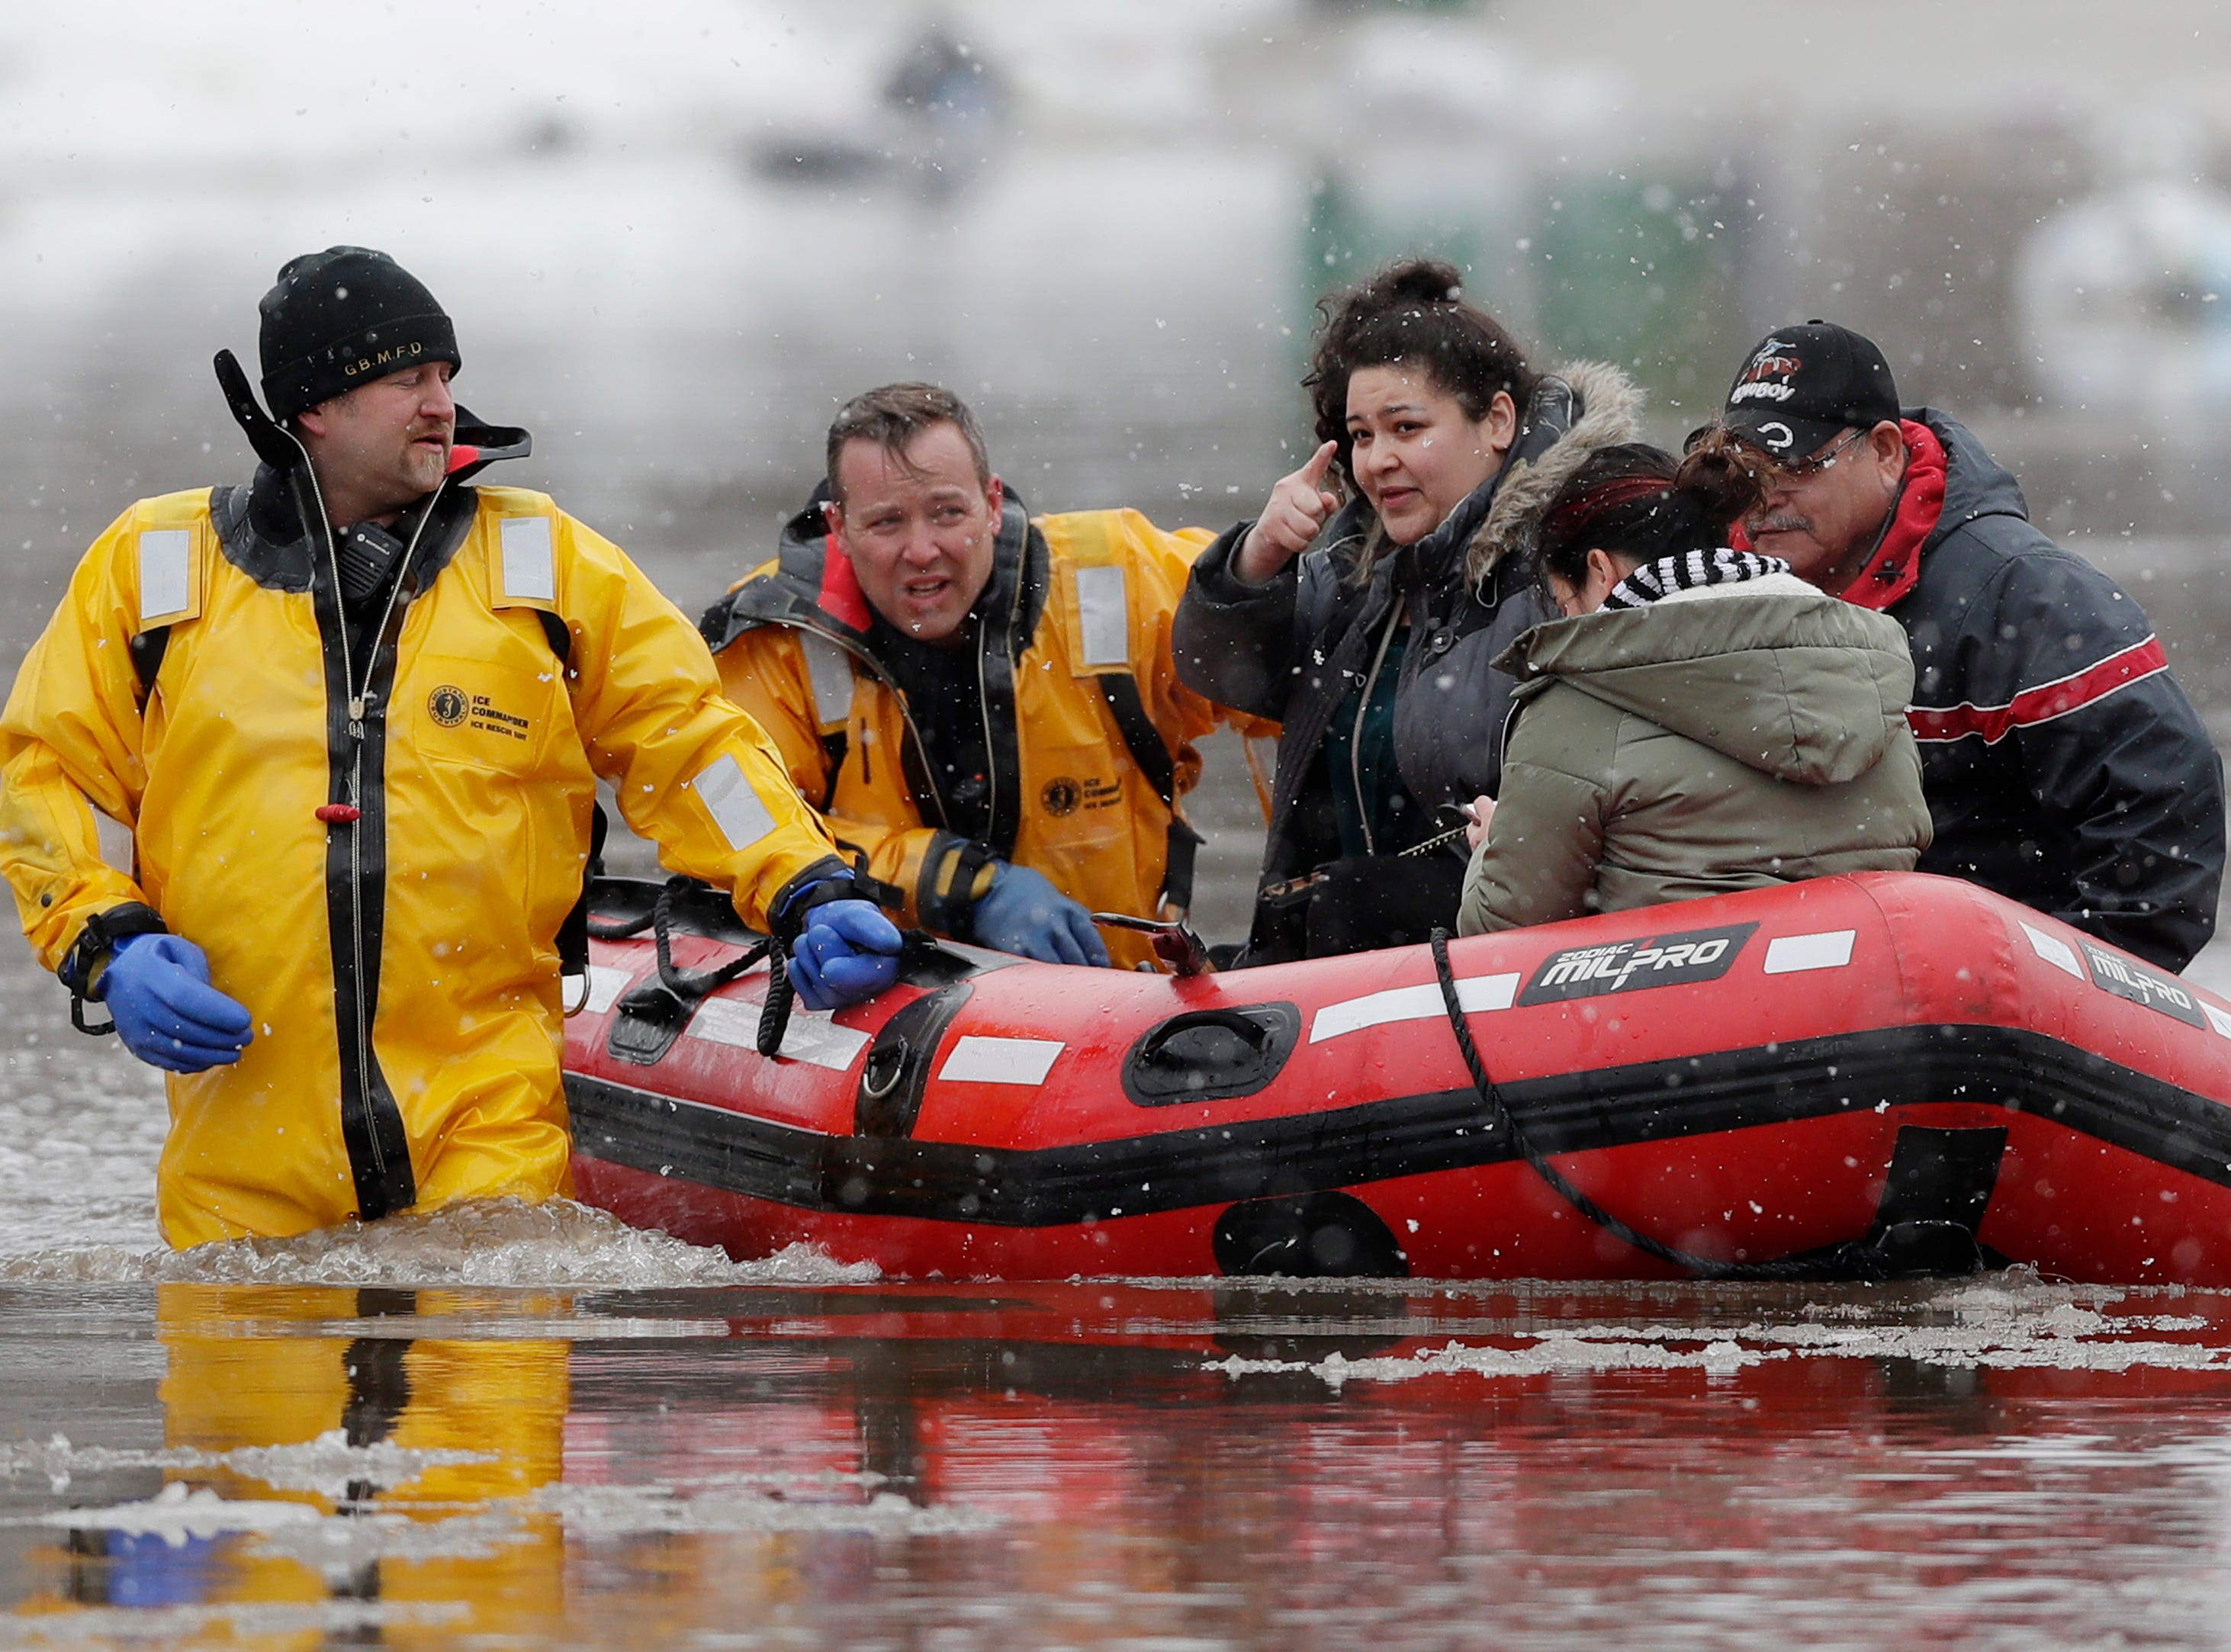 Green Bay firefighters assist residents in evacuating their homes due to East river floodwaters on Friday, March 15, 2019 in Green Bay, Wis.